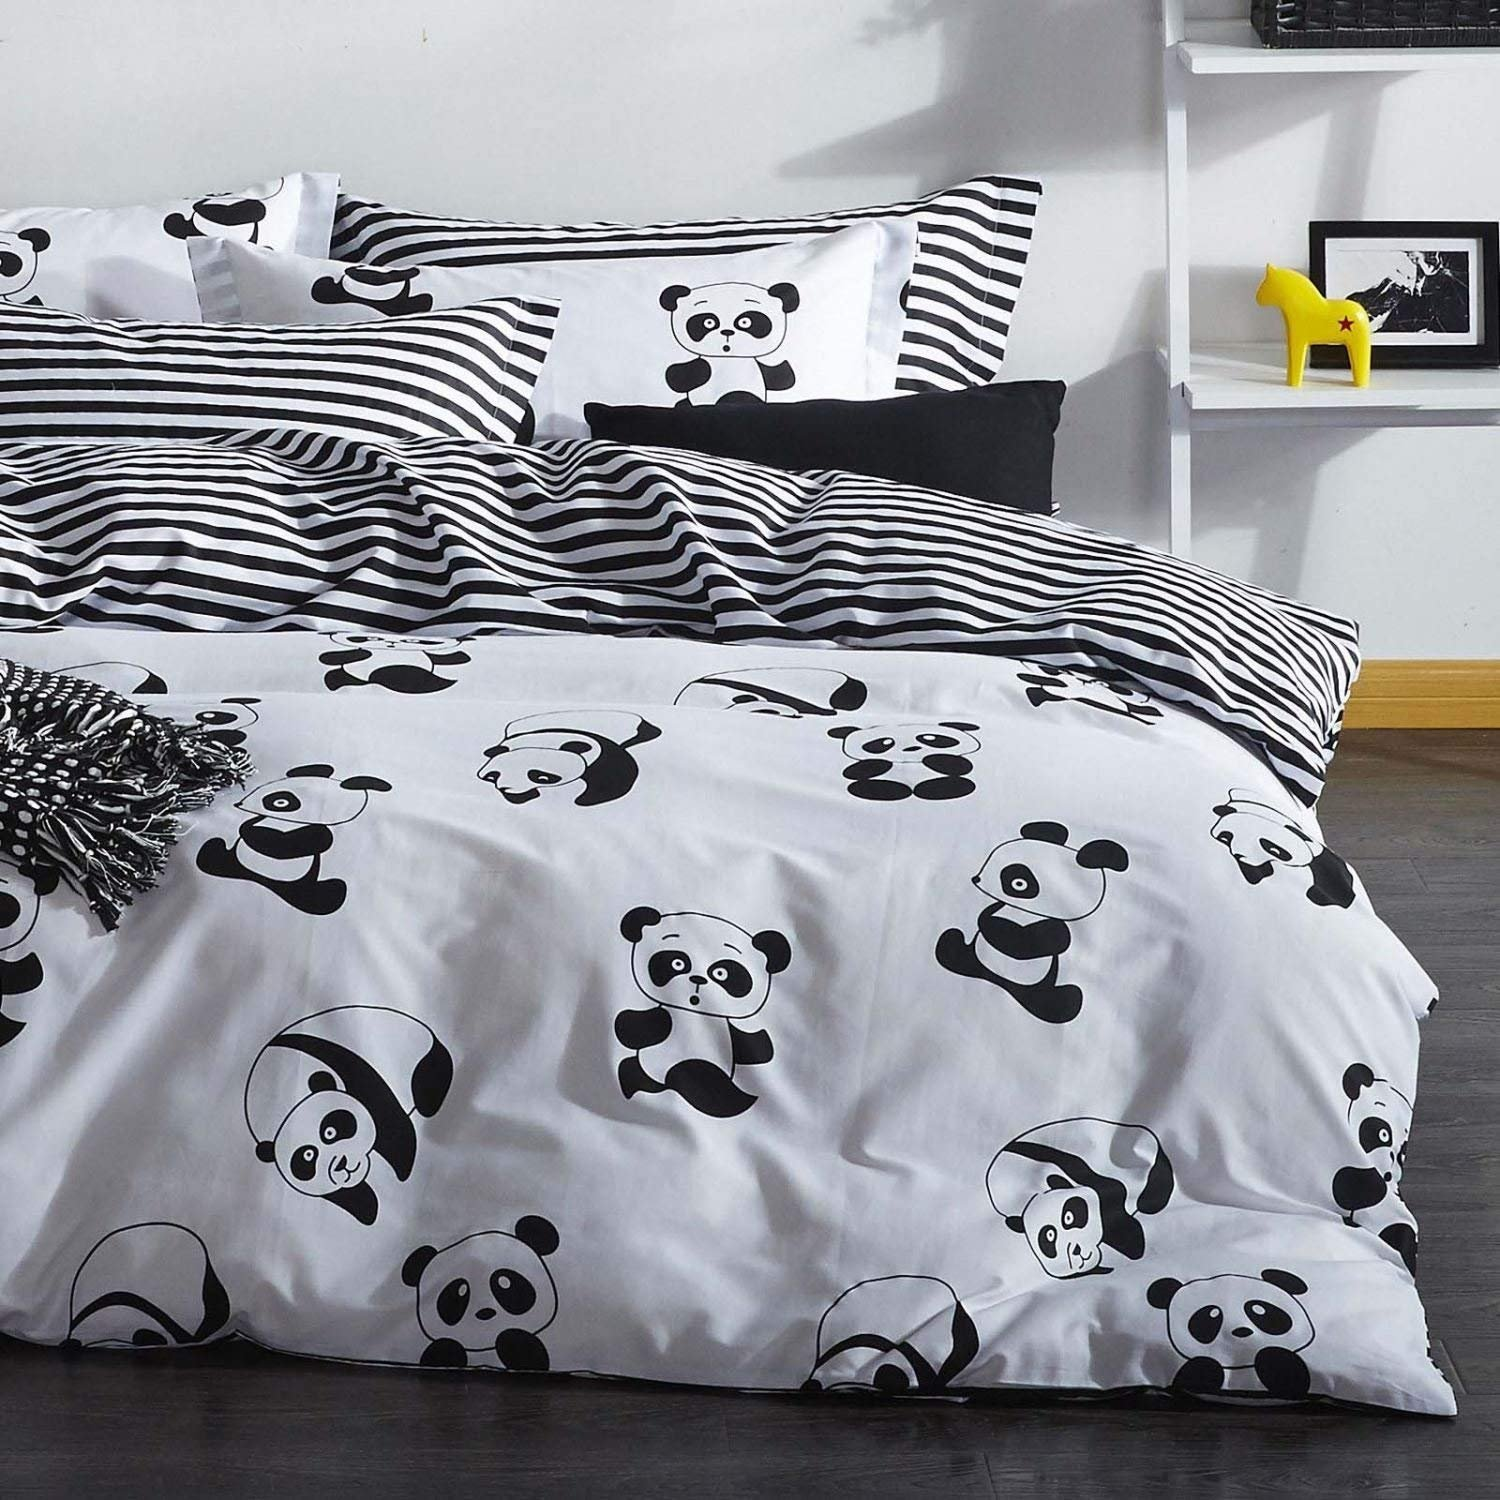 4 Pieces - Full Queen Size Bedding Duvet Cover Set, White and Black Panda Animal Patterns Design Prints,1 Duvet Cover,1 Bed Sheet, 2 Pillow Cases (Queen) Pamukana-Panda